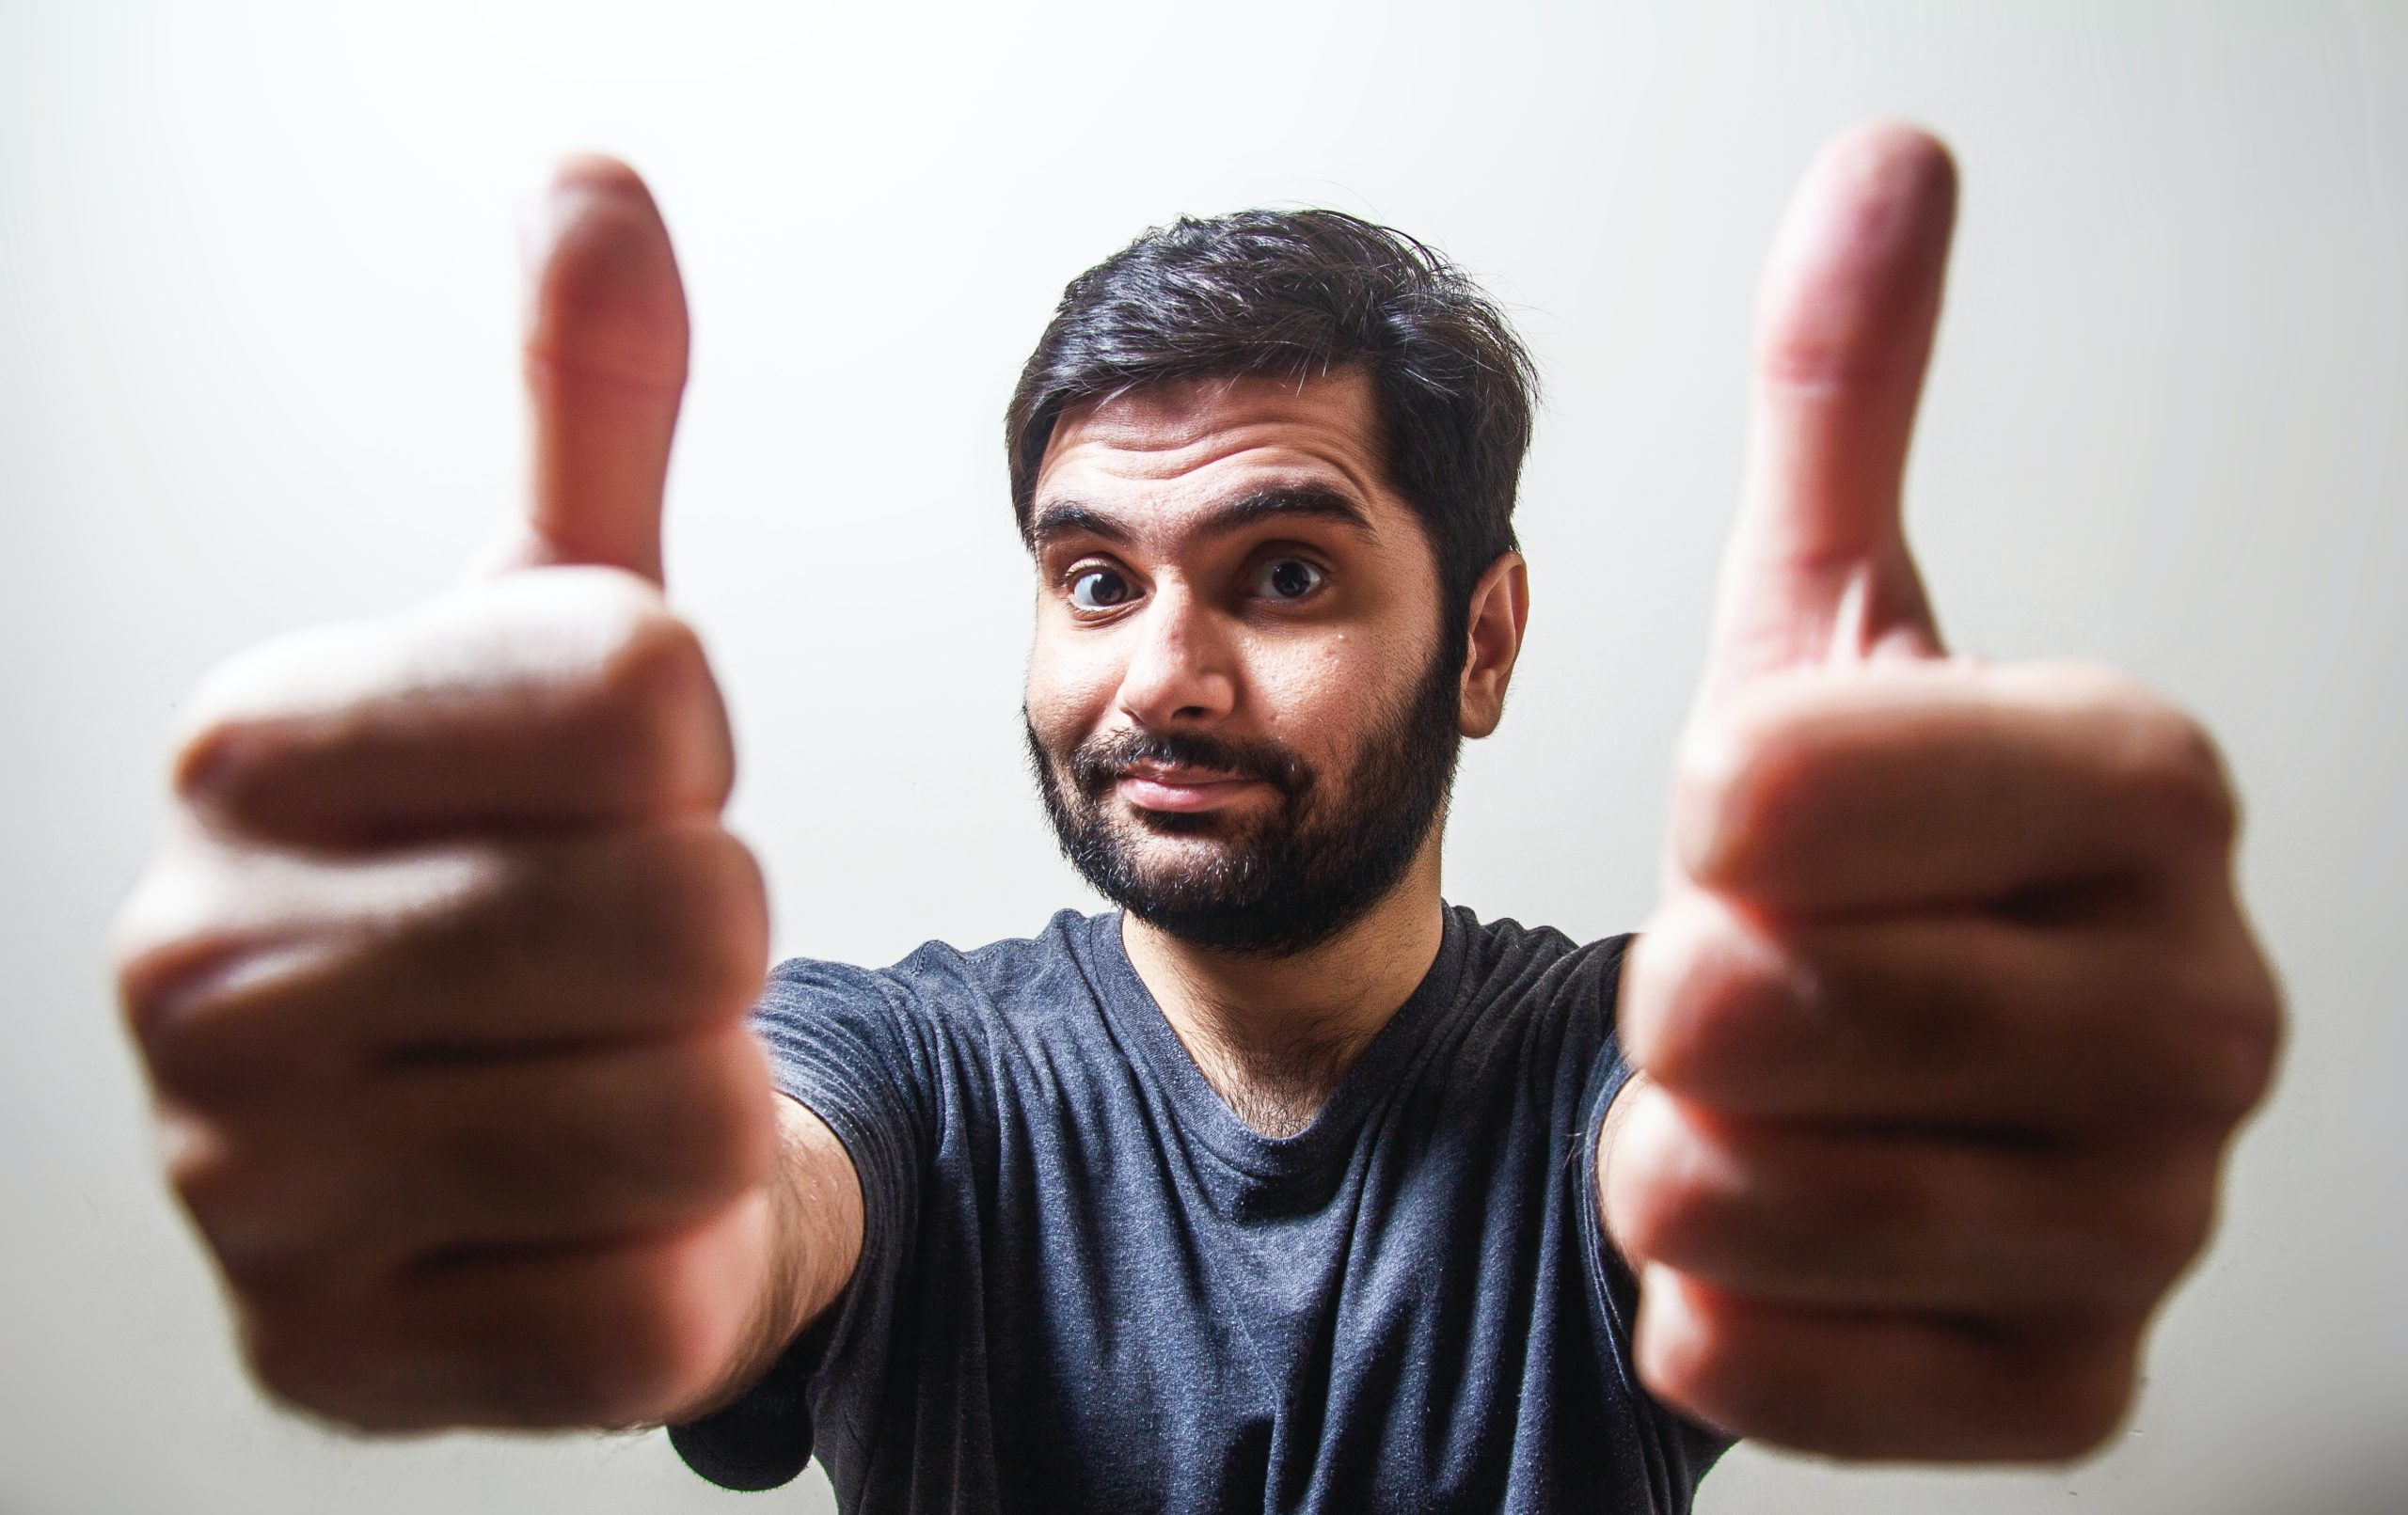 A man makes a thumbs up sign with both hands.